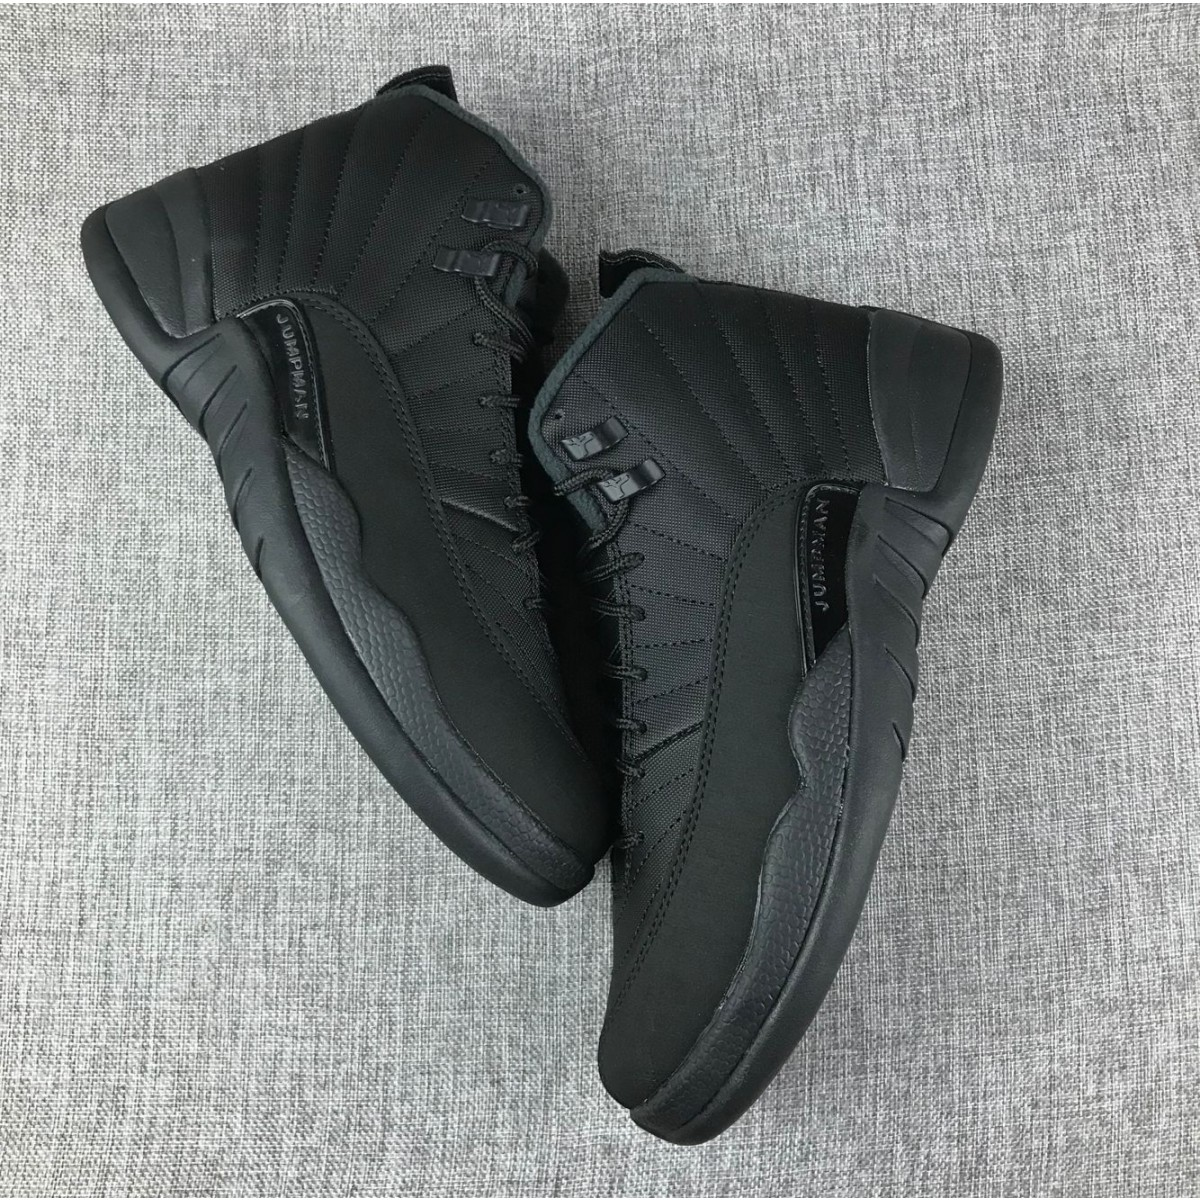 newest 70144 80290 Air Jordan 12 'Winterized' Black Shoes